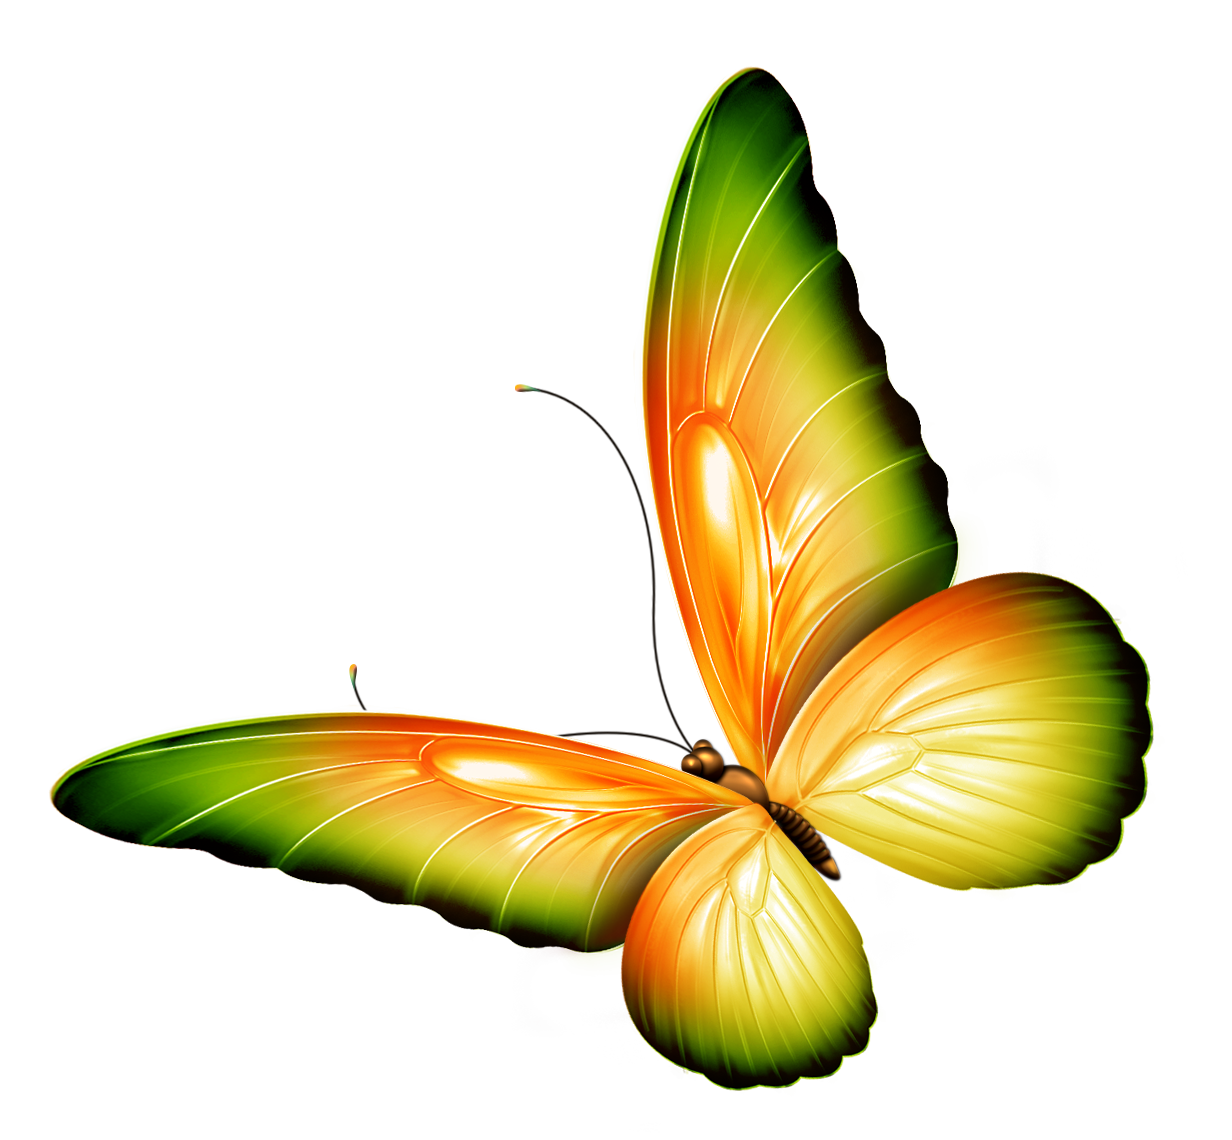 ... butterflies-border-Yellow_and_Green_Transparent_Butterfly_Clipart.png